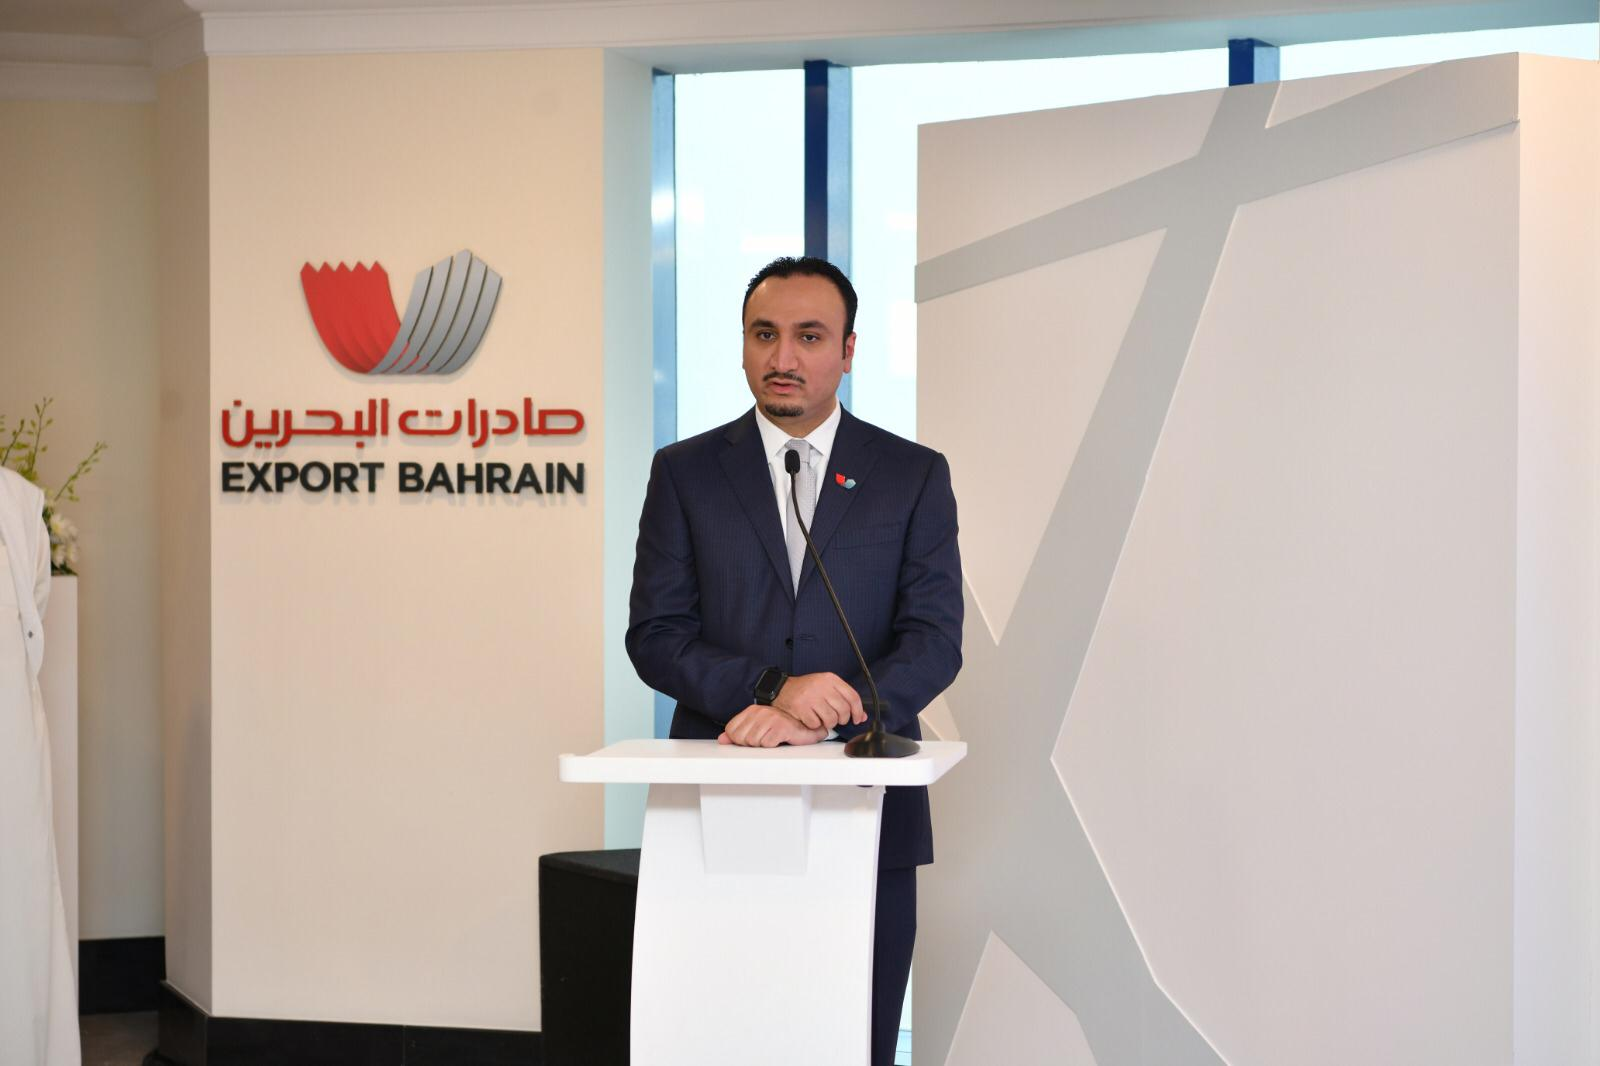 Bahraini startups, want to export your products globally? Export Bahrain will show you the way